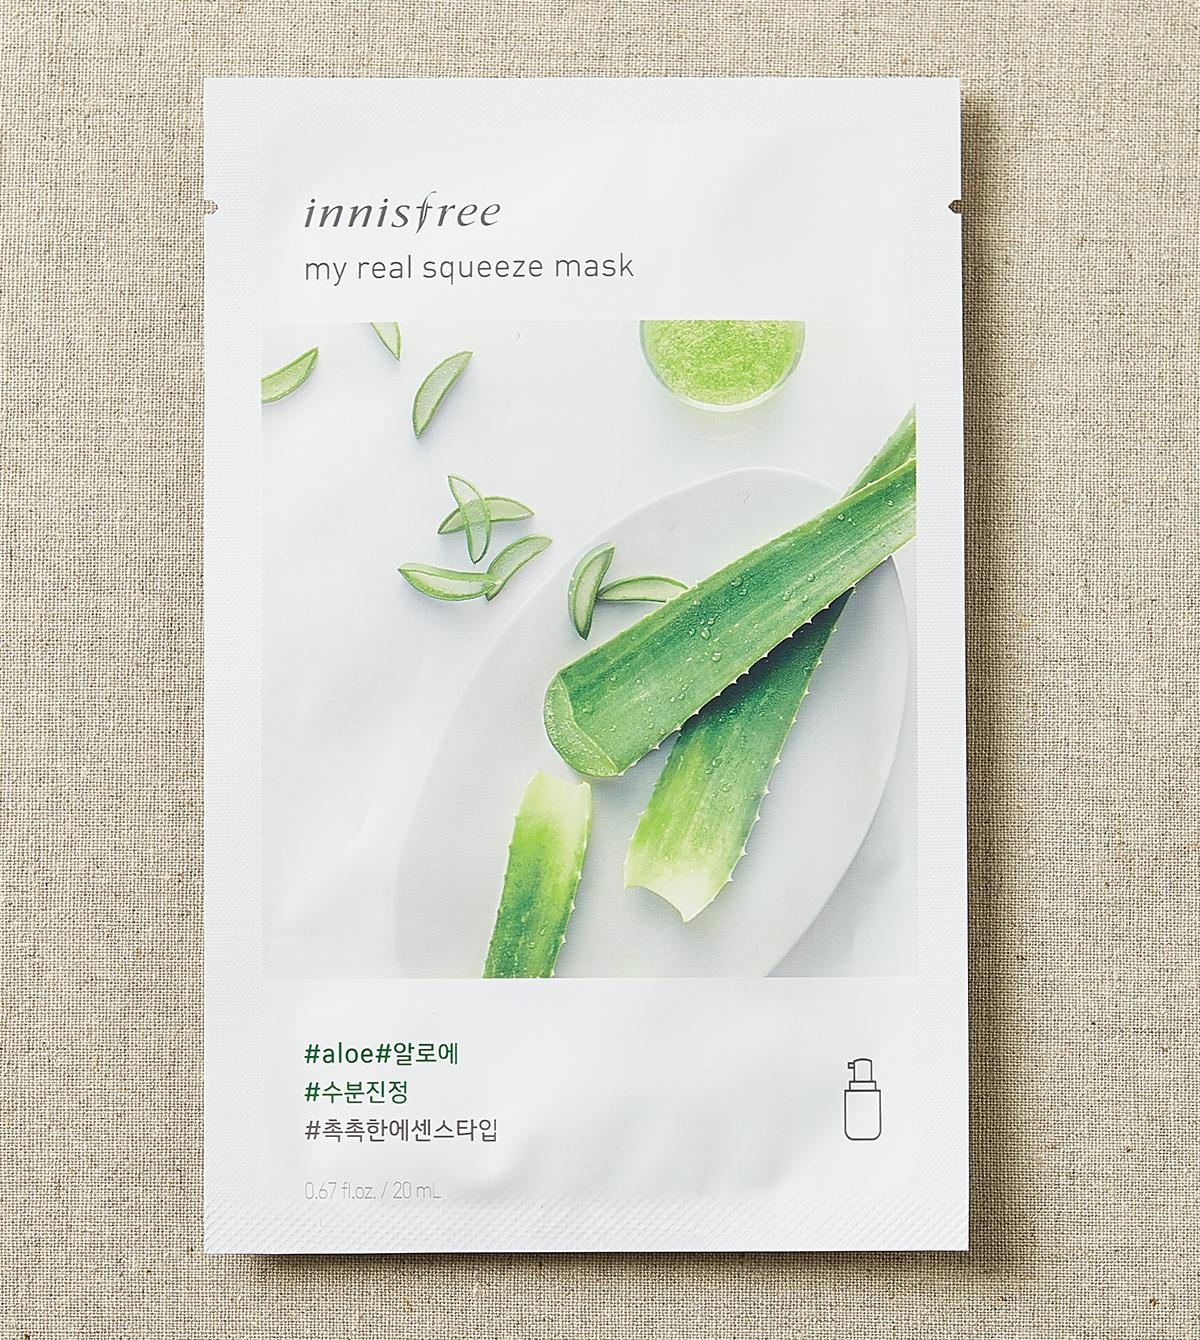 Buy Innisfree Skin Care At Best Prices Online In Bangladesh Daraz Real Squeeze Mask Black Berry My Aloe 20ml